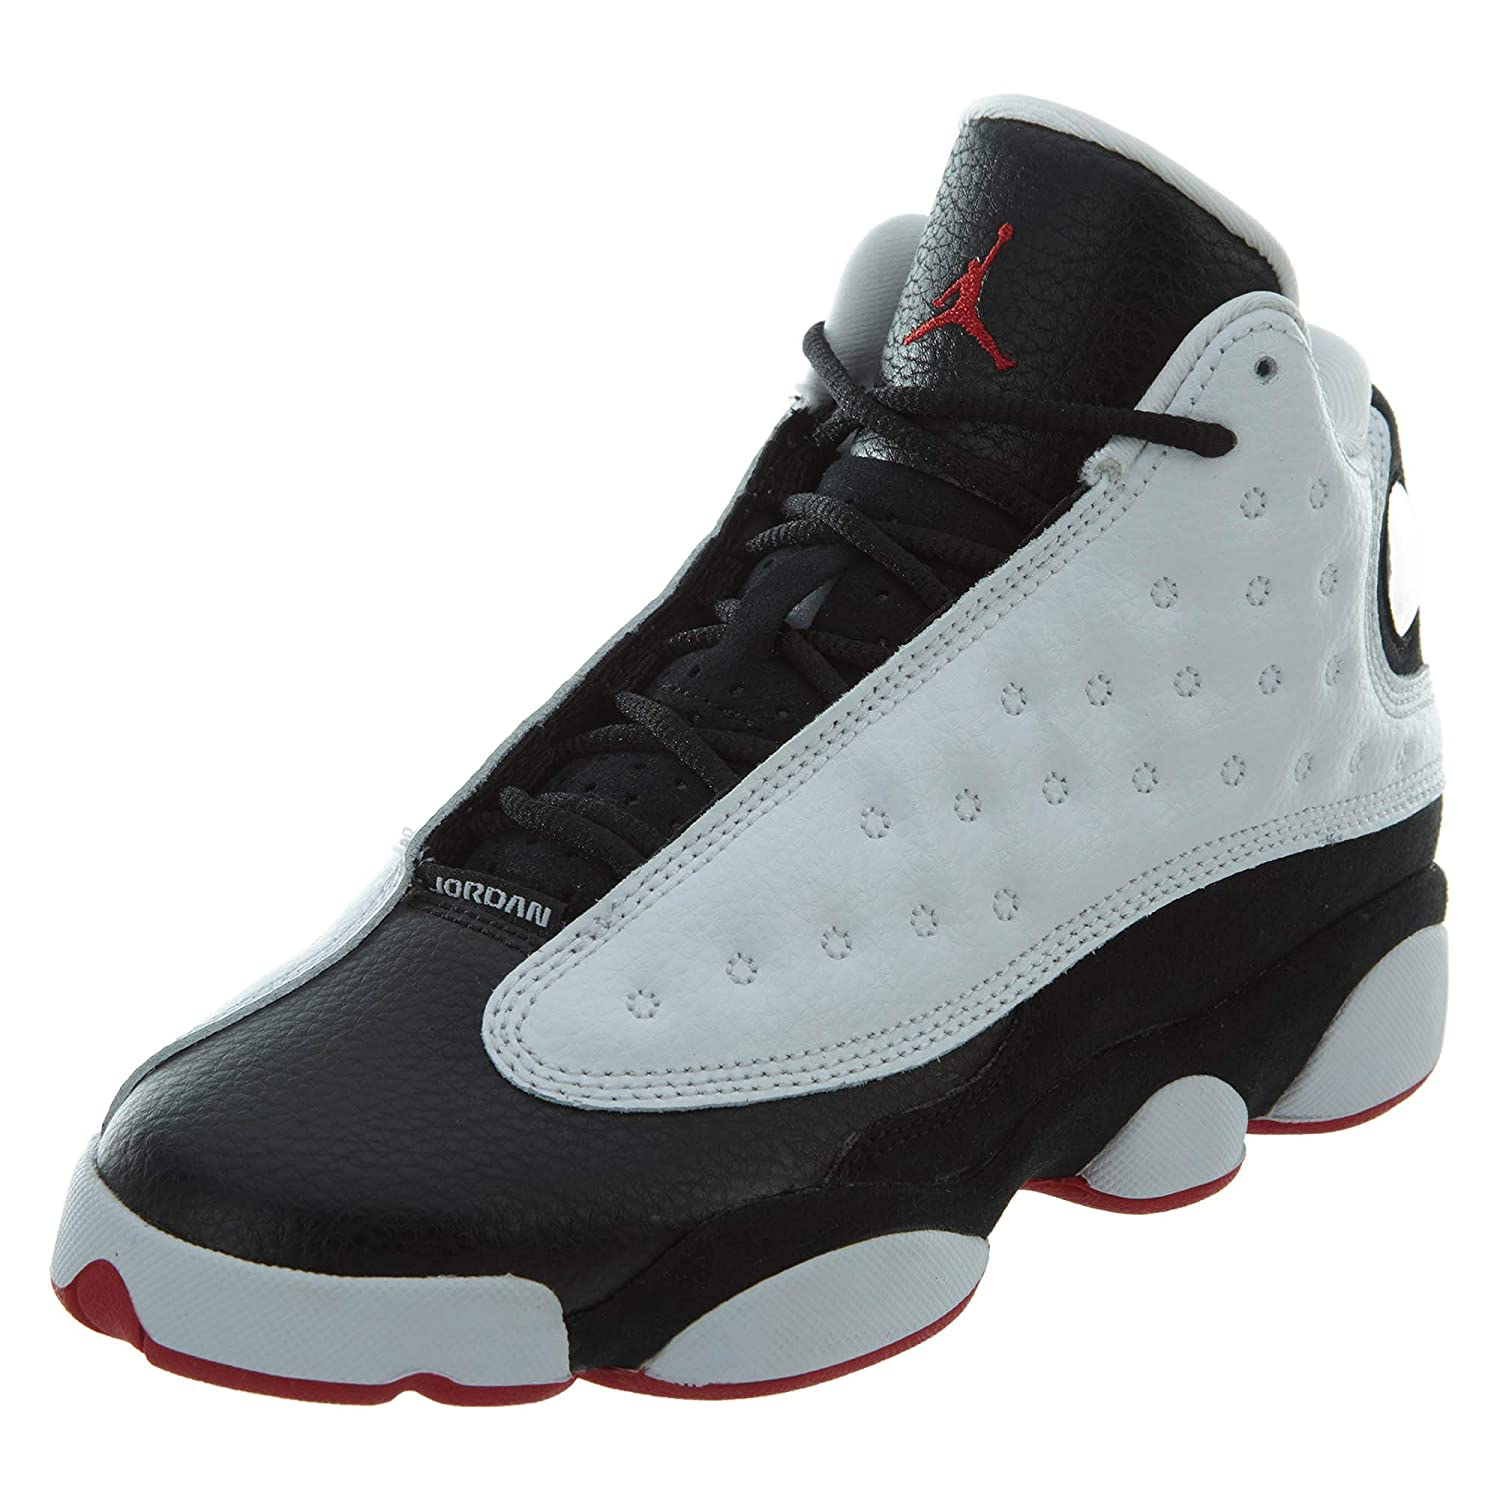 937ca2246768e Jordan Nike Air 13 Retro Kids BG He Got Game White/Black/True Red  884129-104 (Size: 6.5Y)